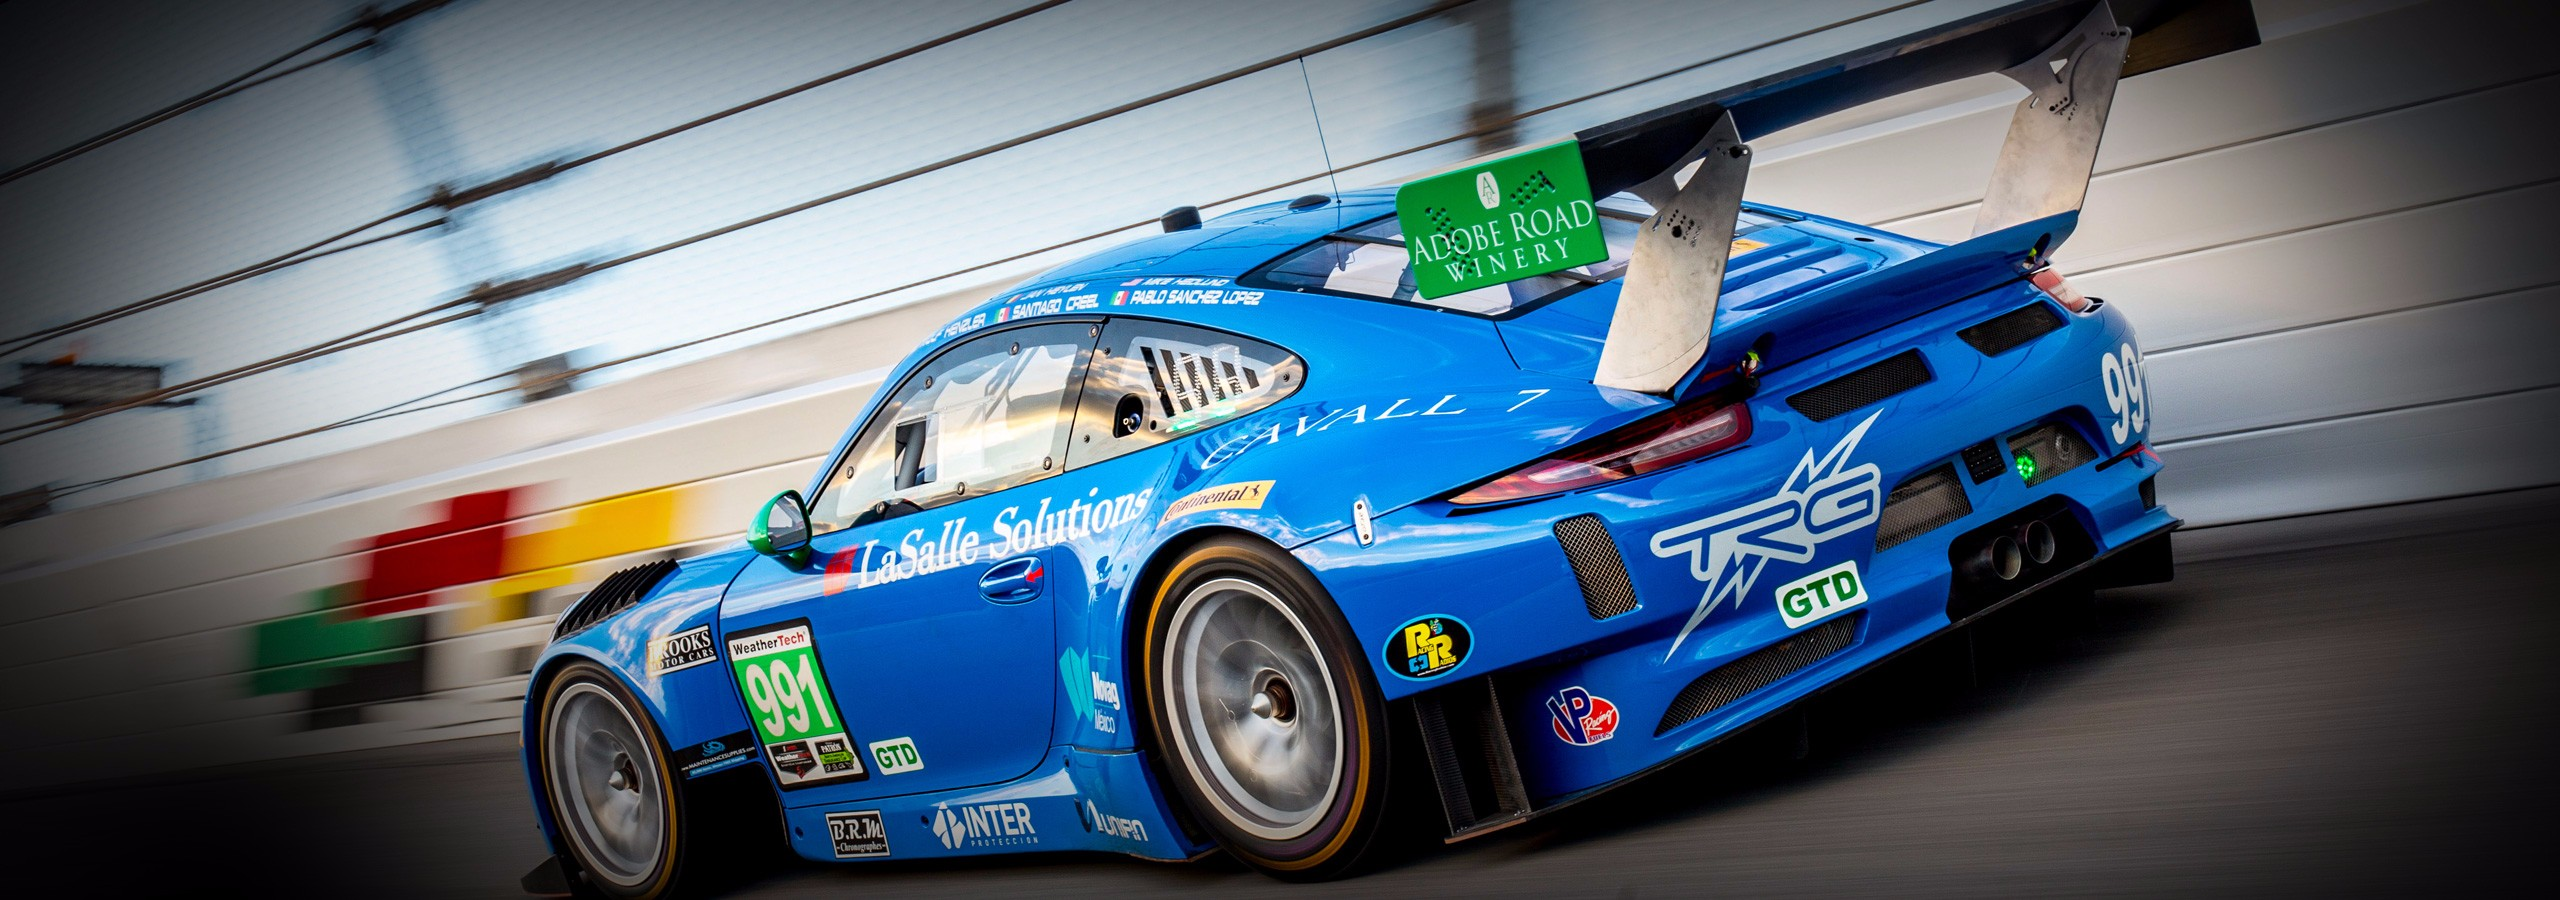 TRG REVEALS POWERFUL 24 HOURS AT DAYTONA LINE-UP